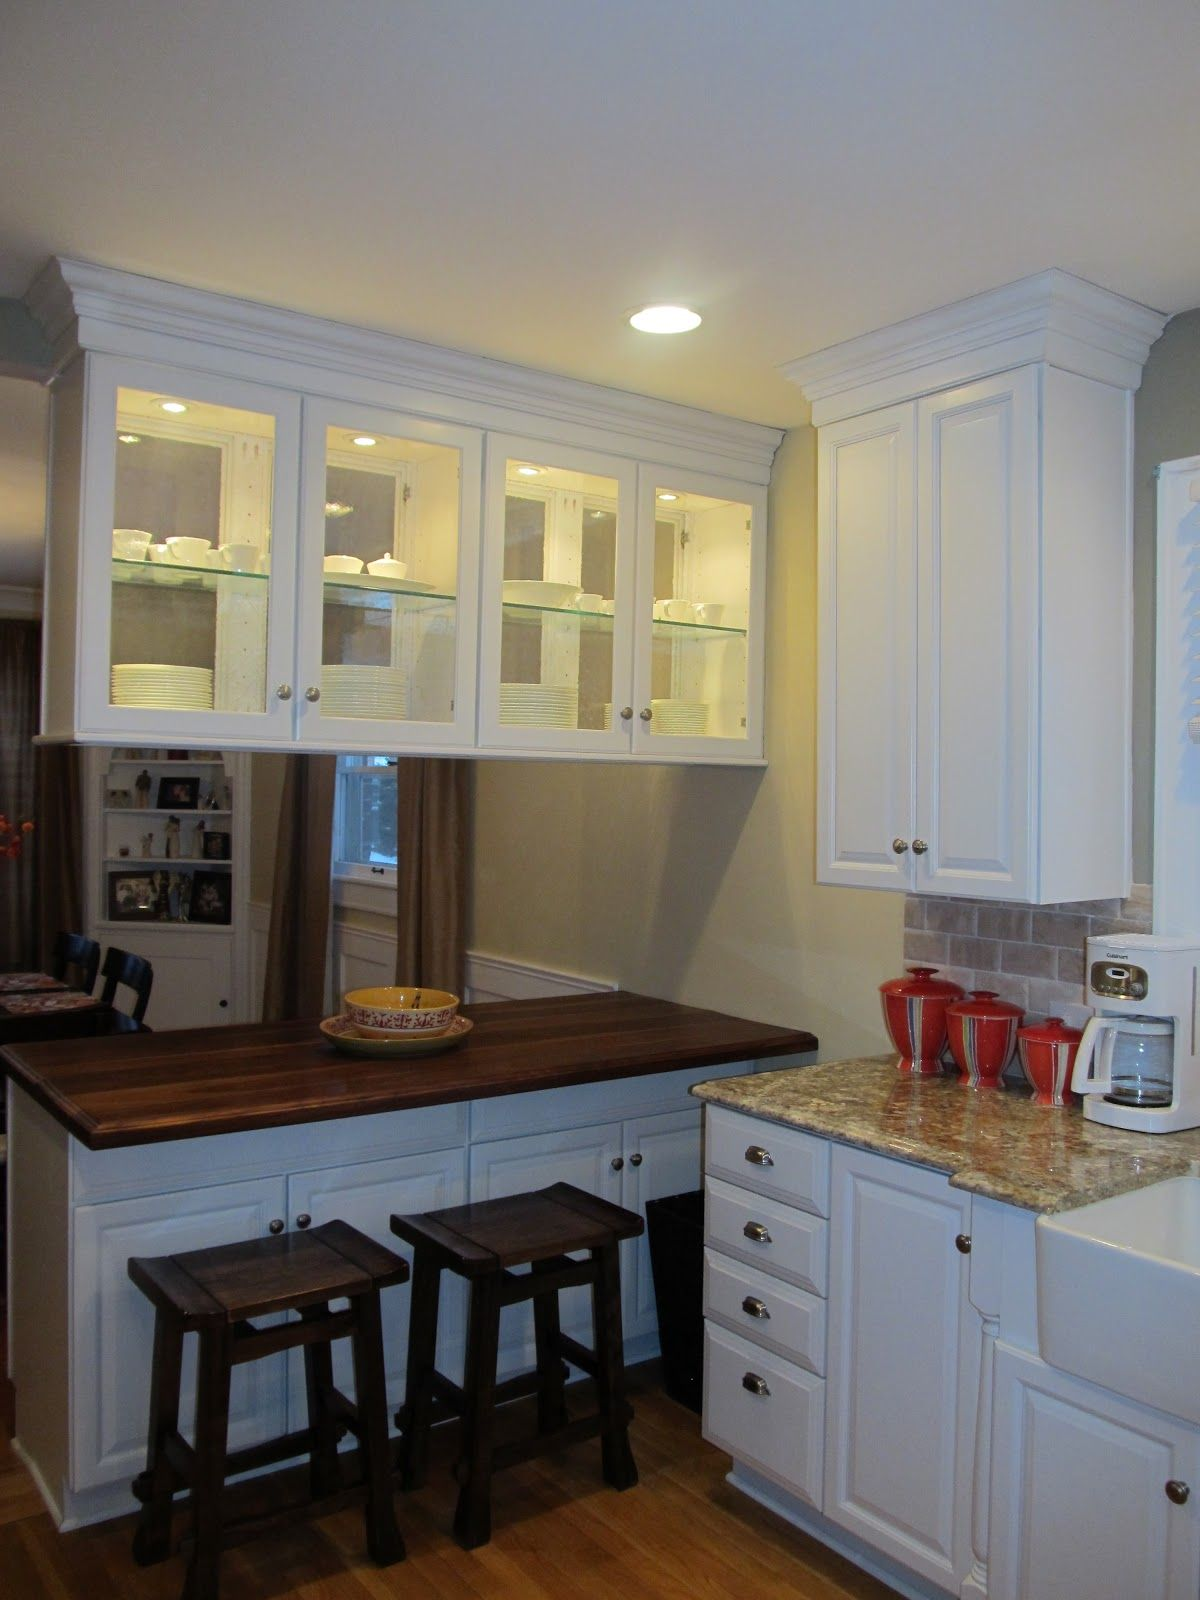 Kitchen Peninsula But With Enclosed Cabinets Over And Chalkboard With Menu Or Large Image On Back Kitchen Design Hanging Kitchen Cabinets Kitchen Layout